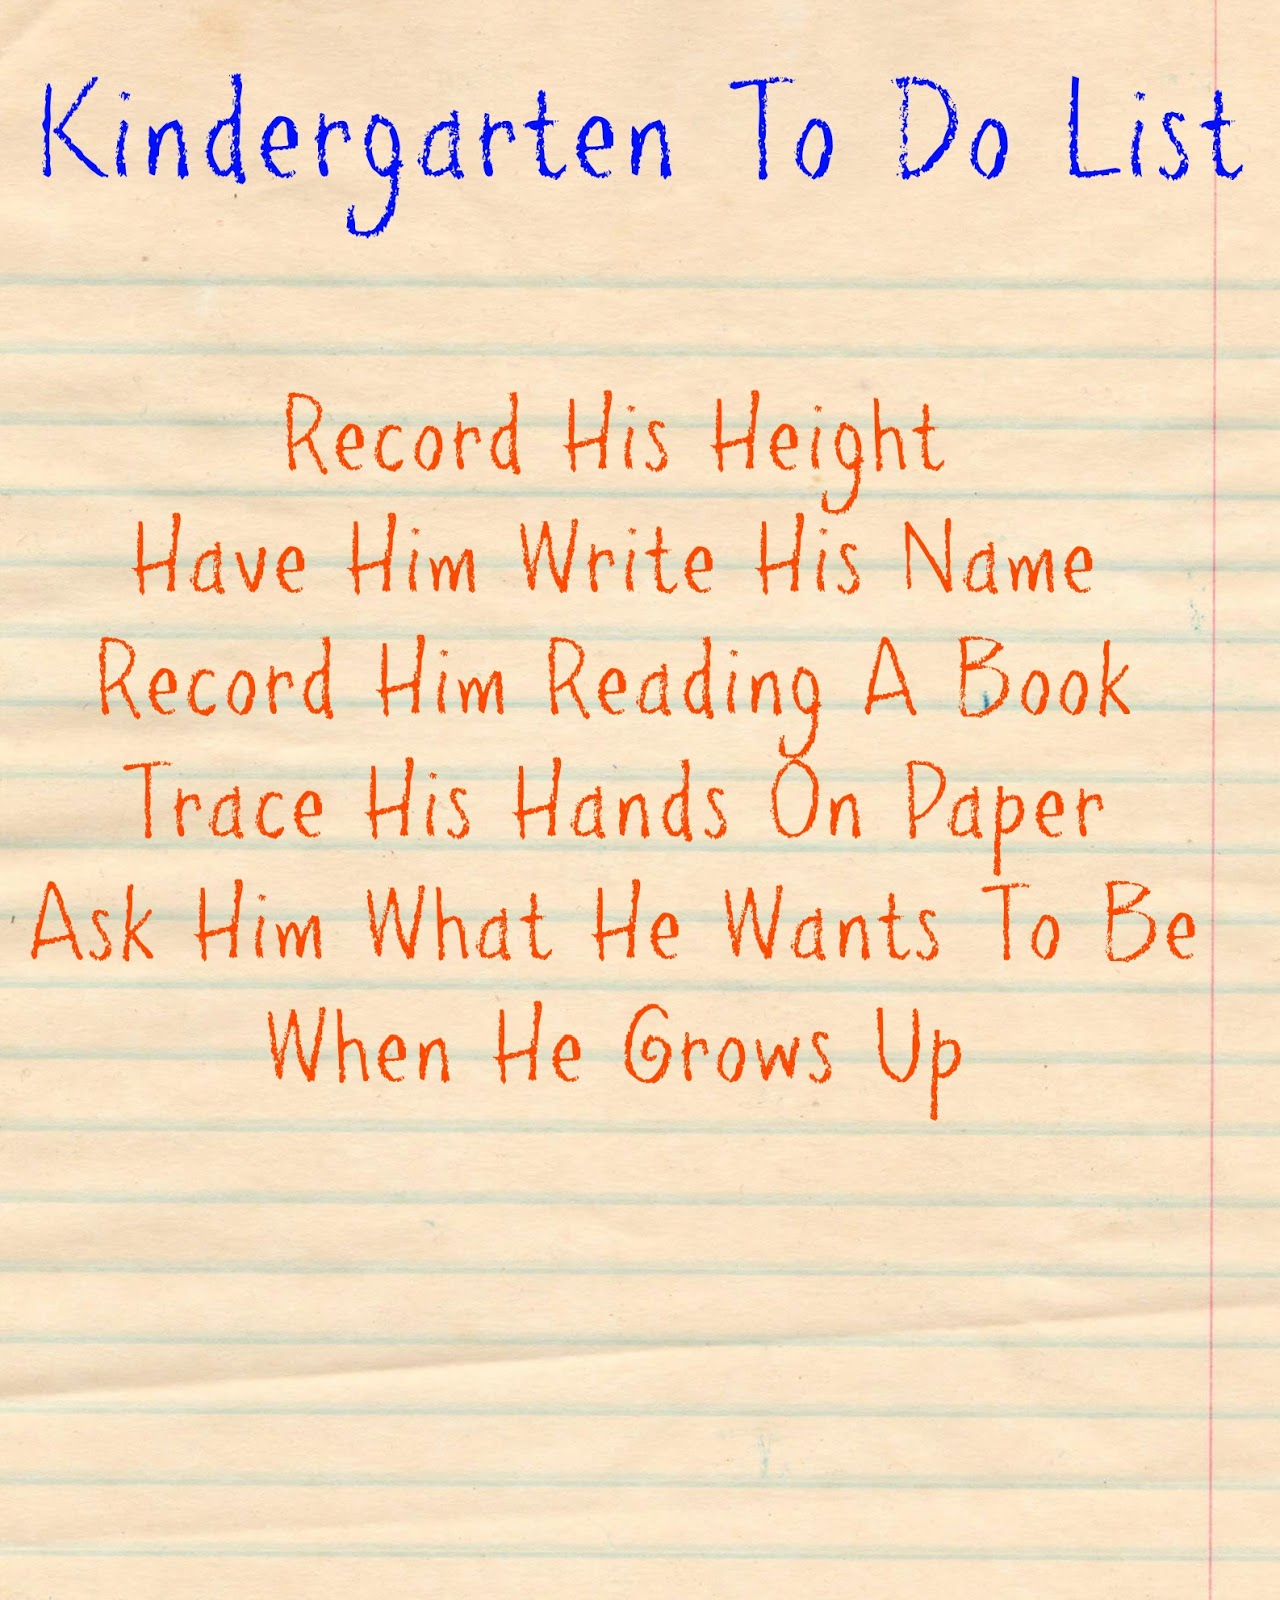 gallery for kindergarten quotes for kids